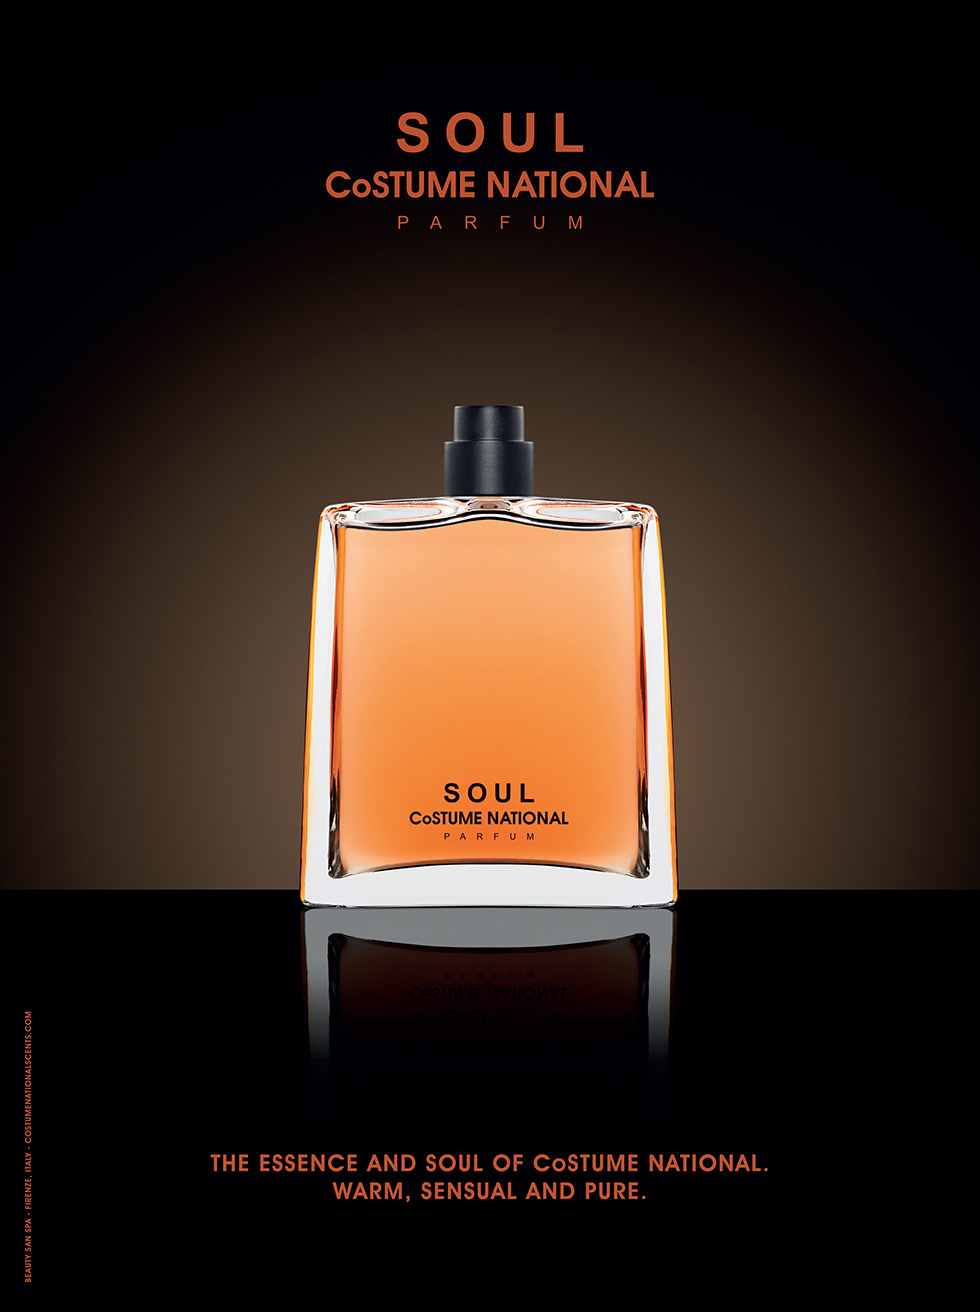 Soul CoSTUME NATIONAL perfume - a new fragrance for women and men 2015